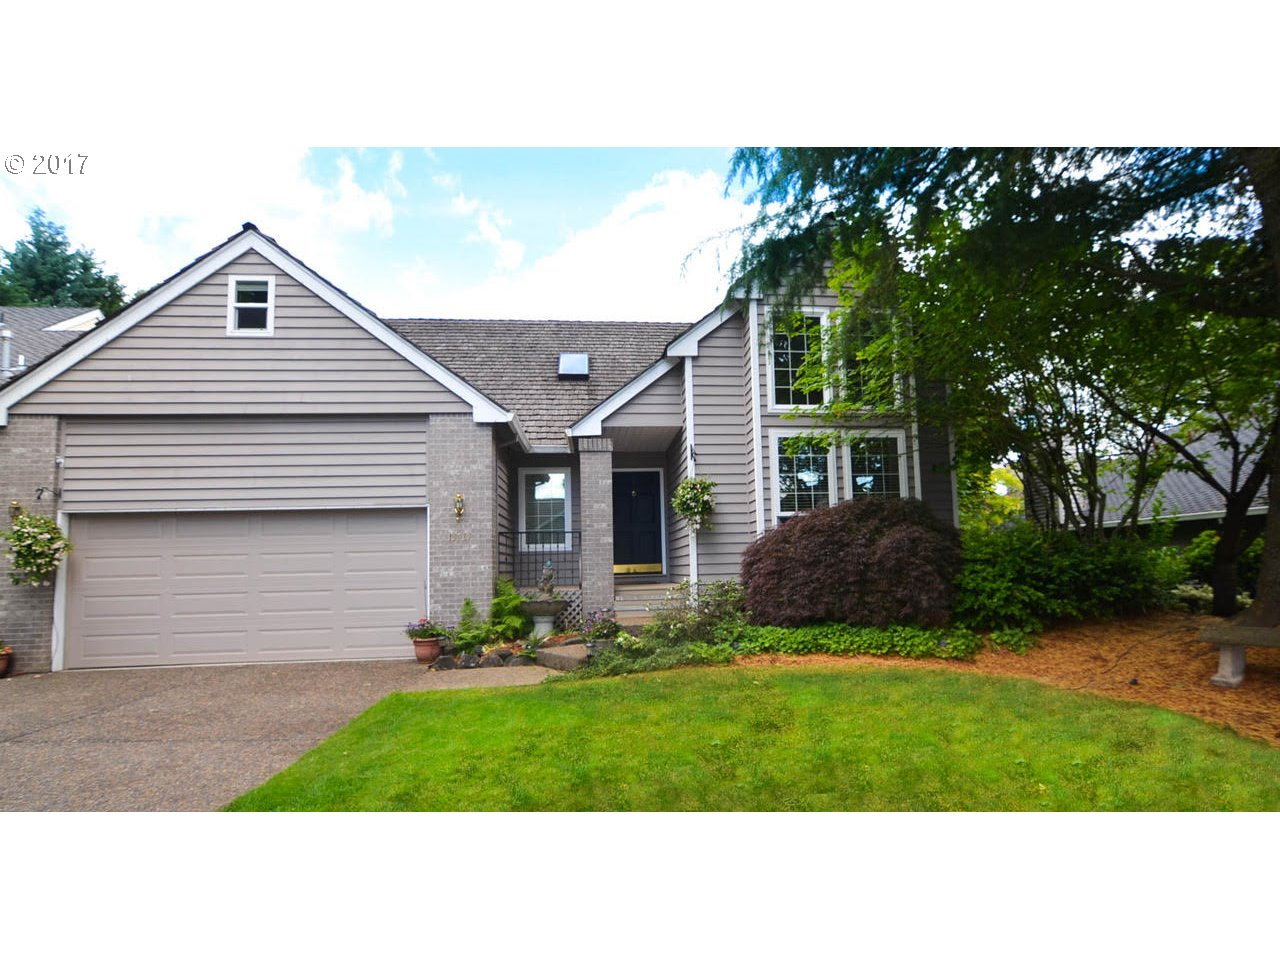 13731 PROVINCIAL HILL DR, Lake Oswego, OR 97035